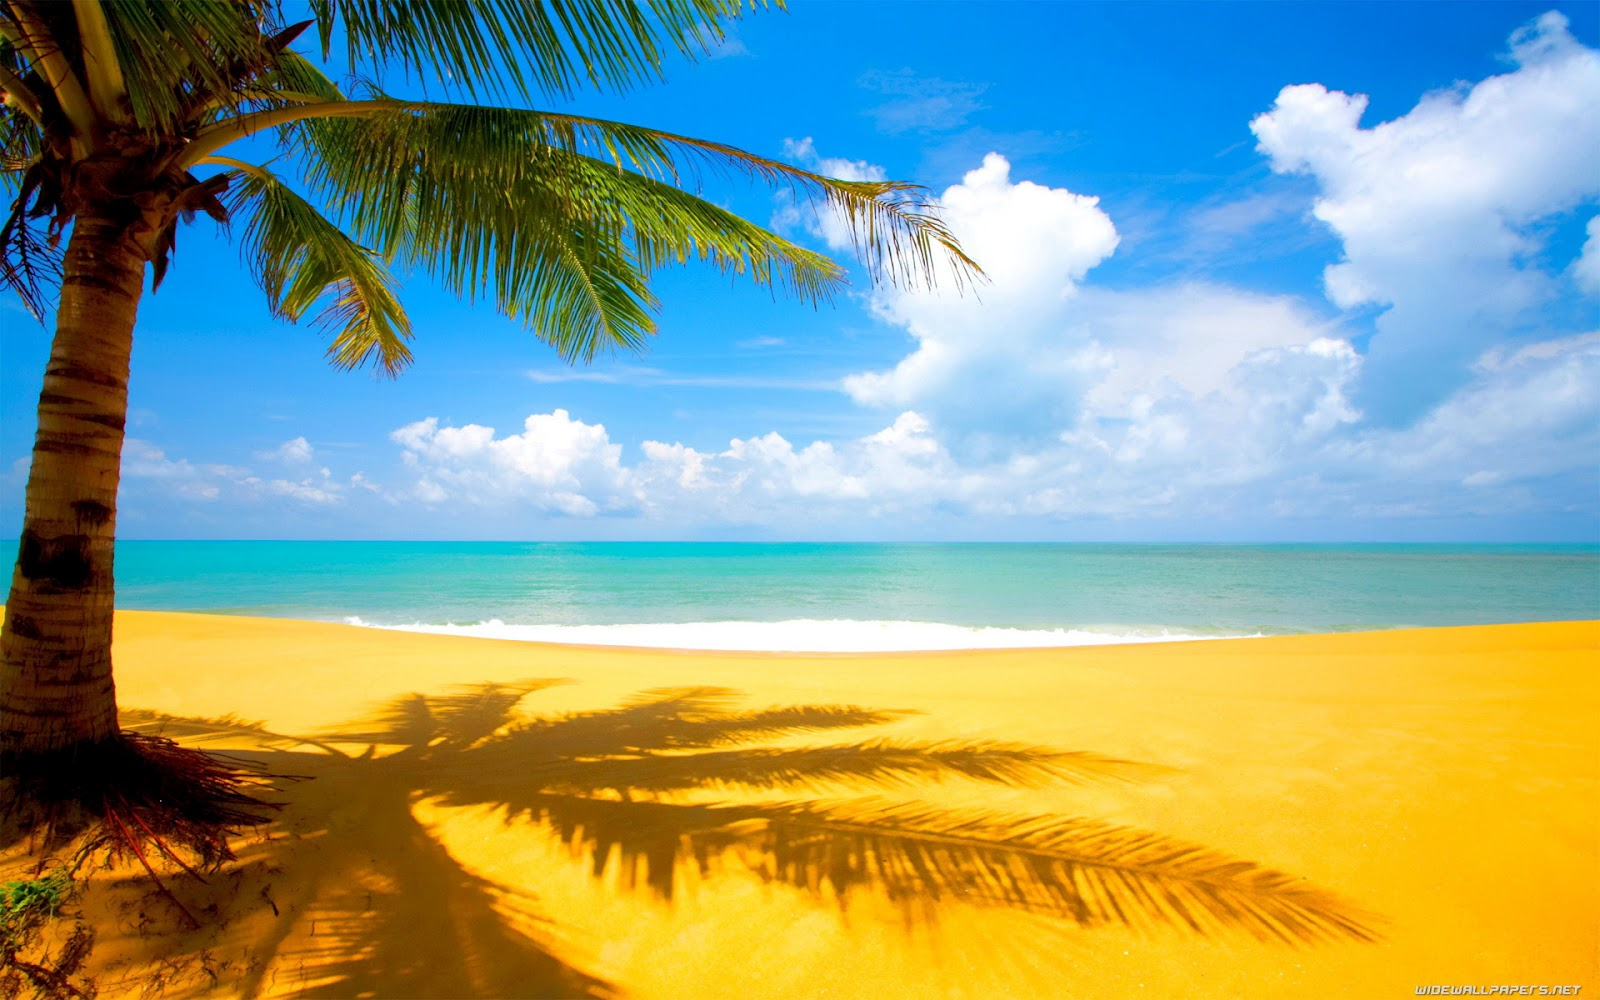 beautiful beach view full HD nature background wallpaper for laptop 1600x1000